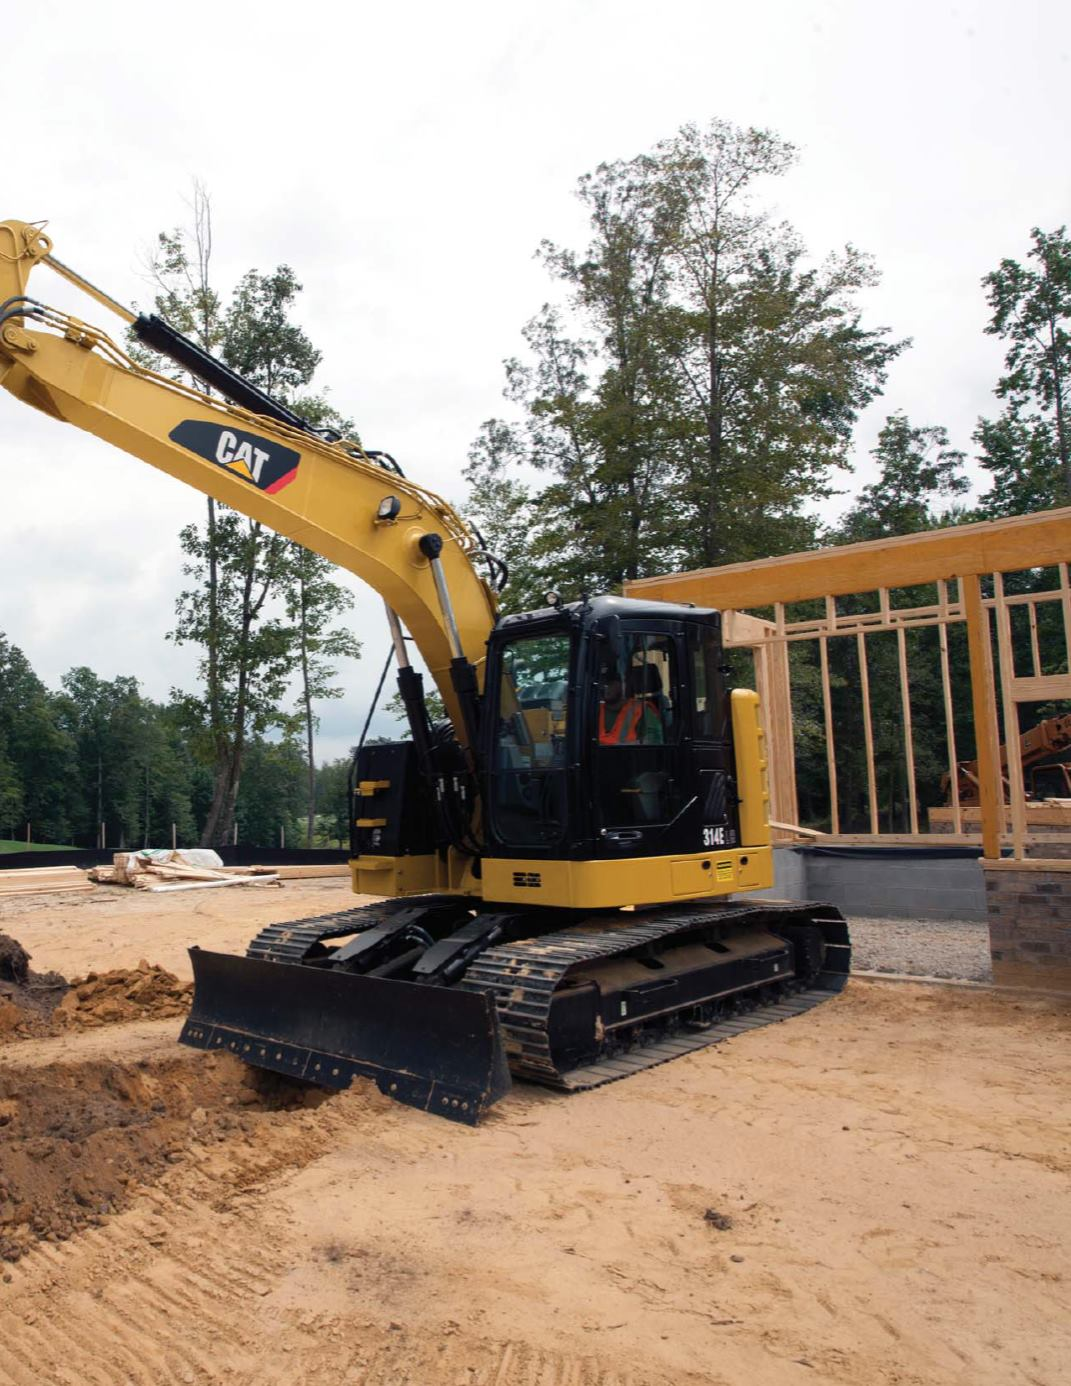 2016 Caterpillar 308c photo - 3